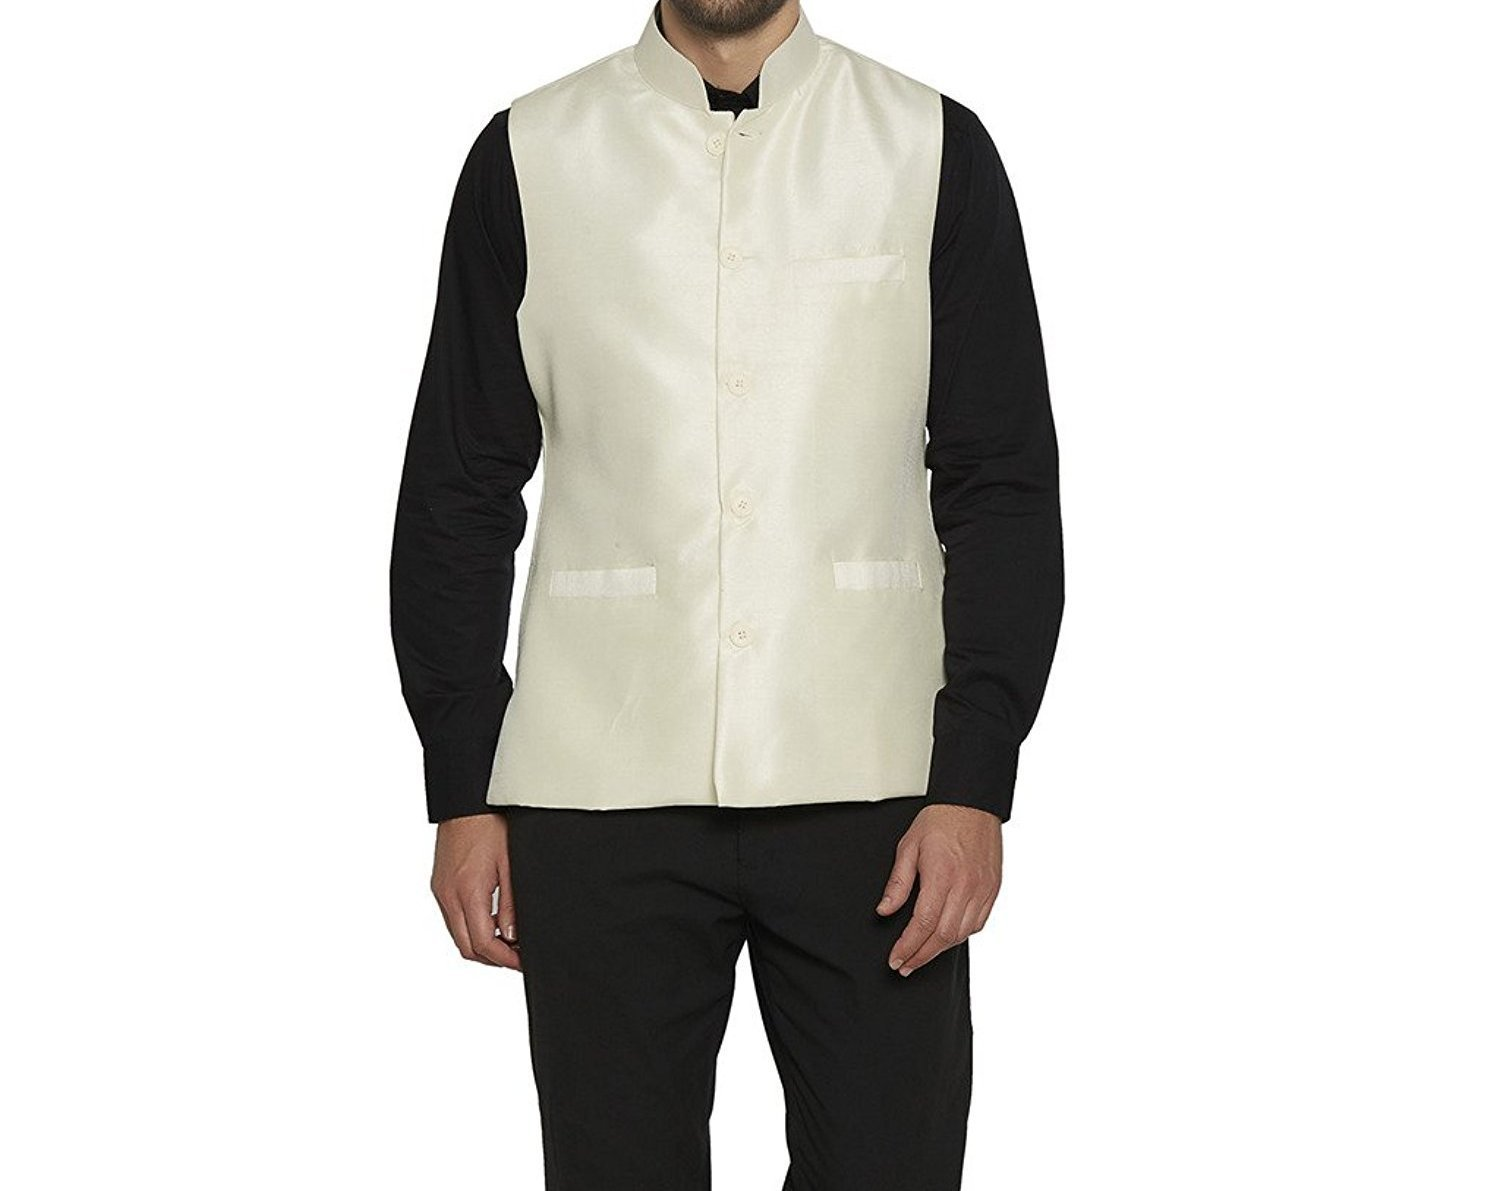 Royal Kurta Men's Silk Blend Ethnic Bundi Nehru Jacket For Festive Fusion Wear 42 Off white by Royal Kurta